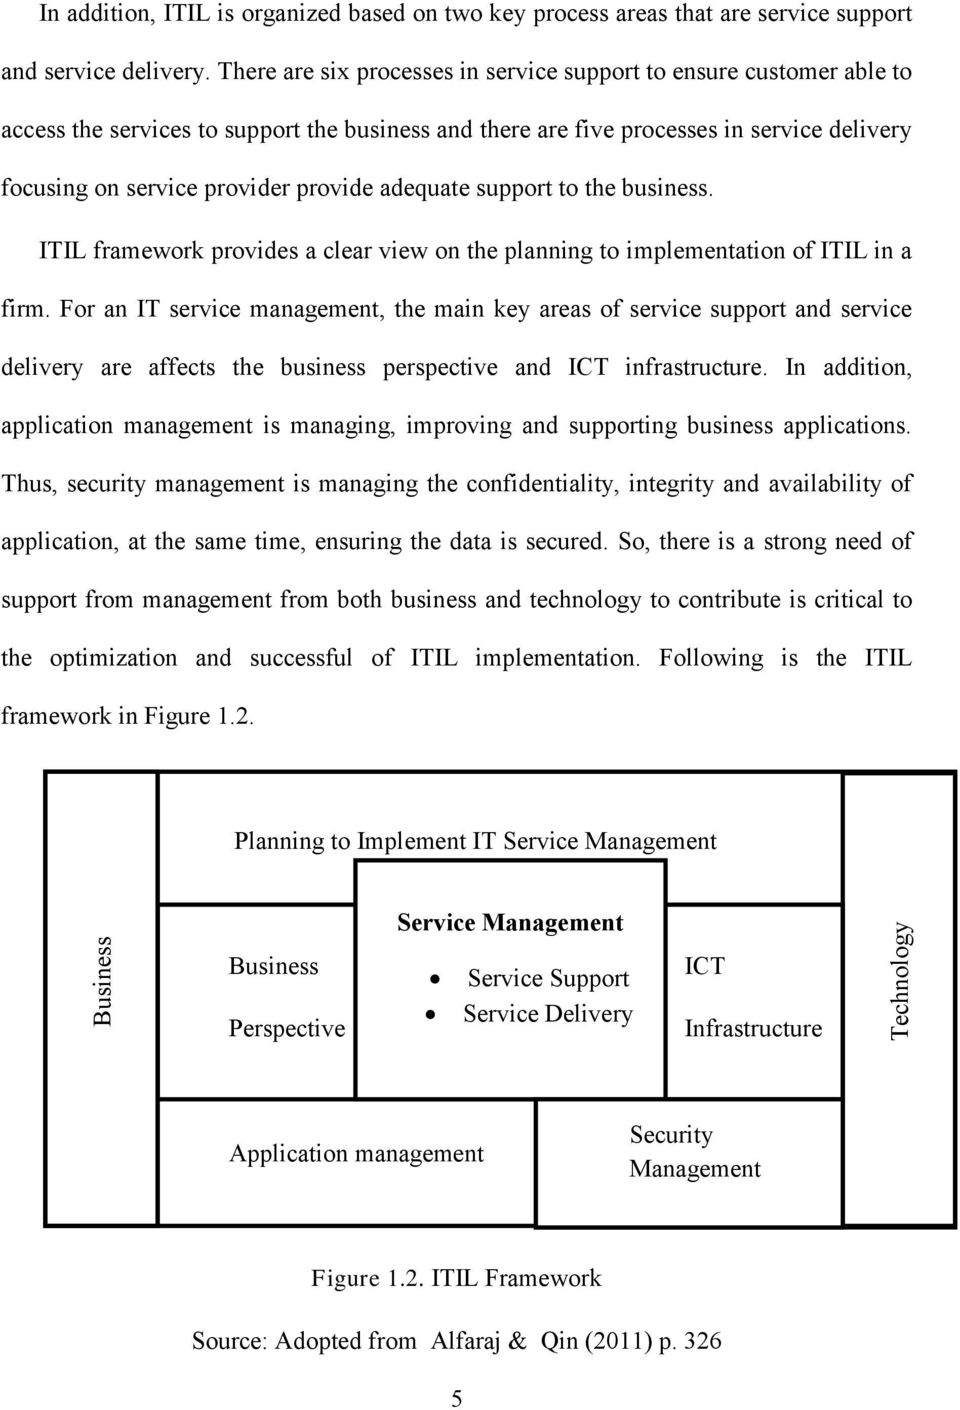 adequate support to the business. ITIL framework provides a clear view on the planning to implementation of ITIL in a firm.